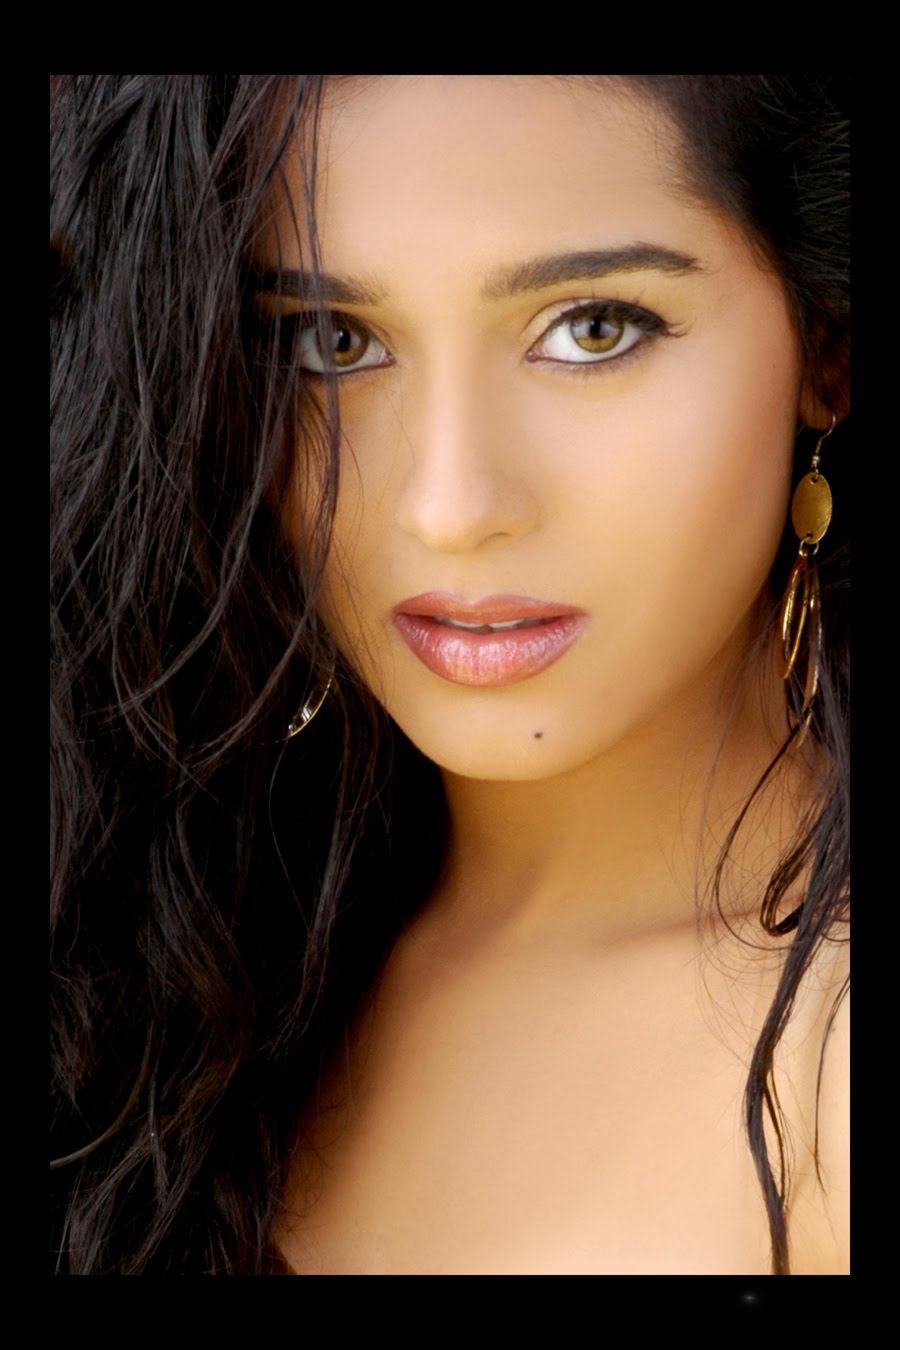 actress celebs Offers high quality images and pictures of the popular world celebrities.